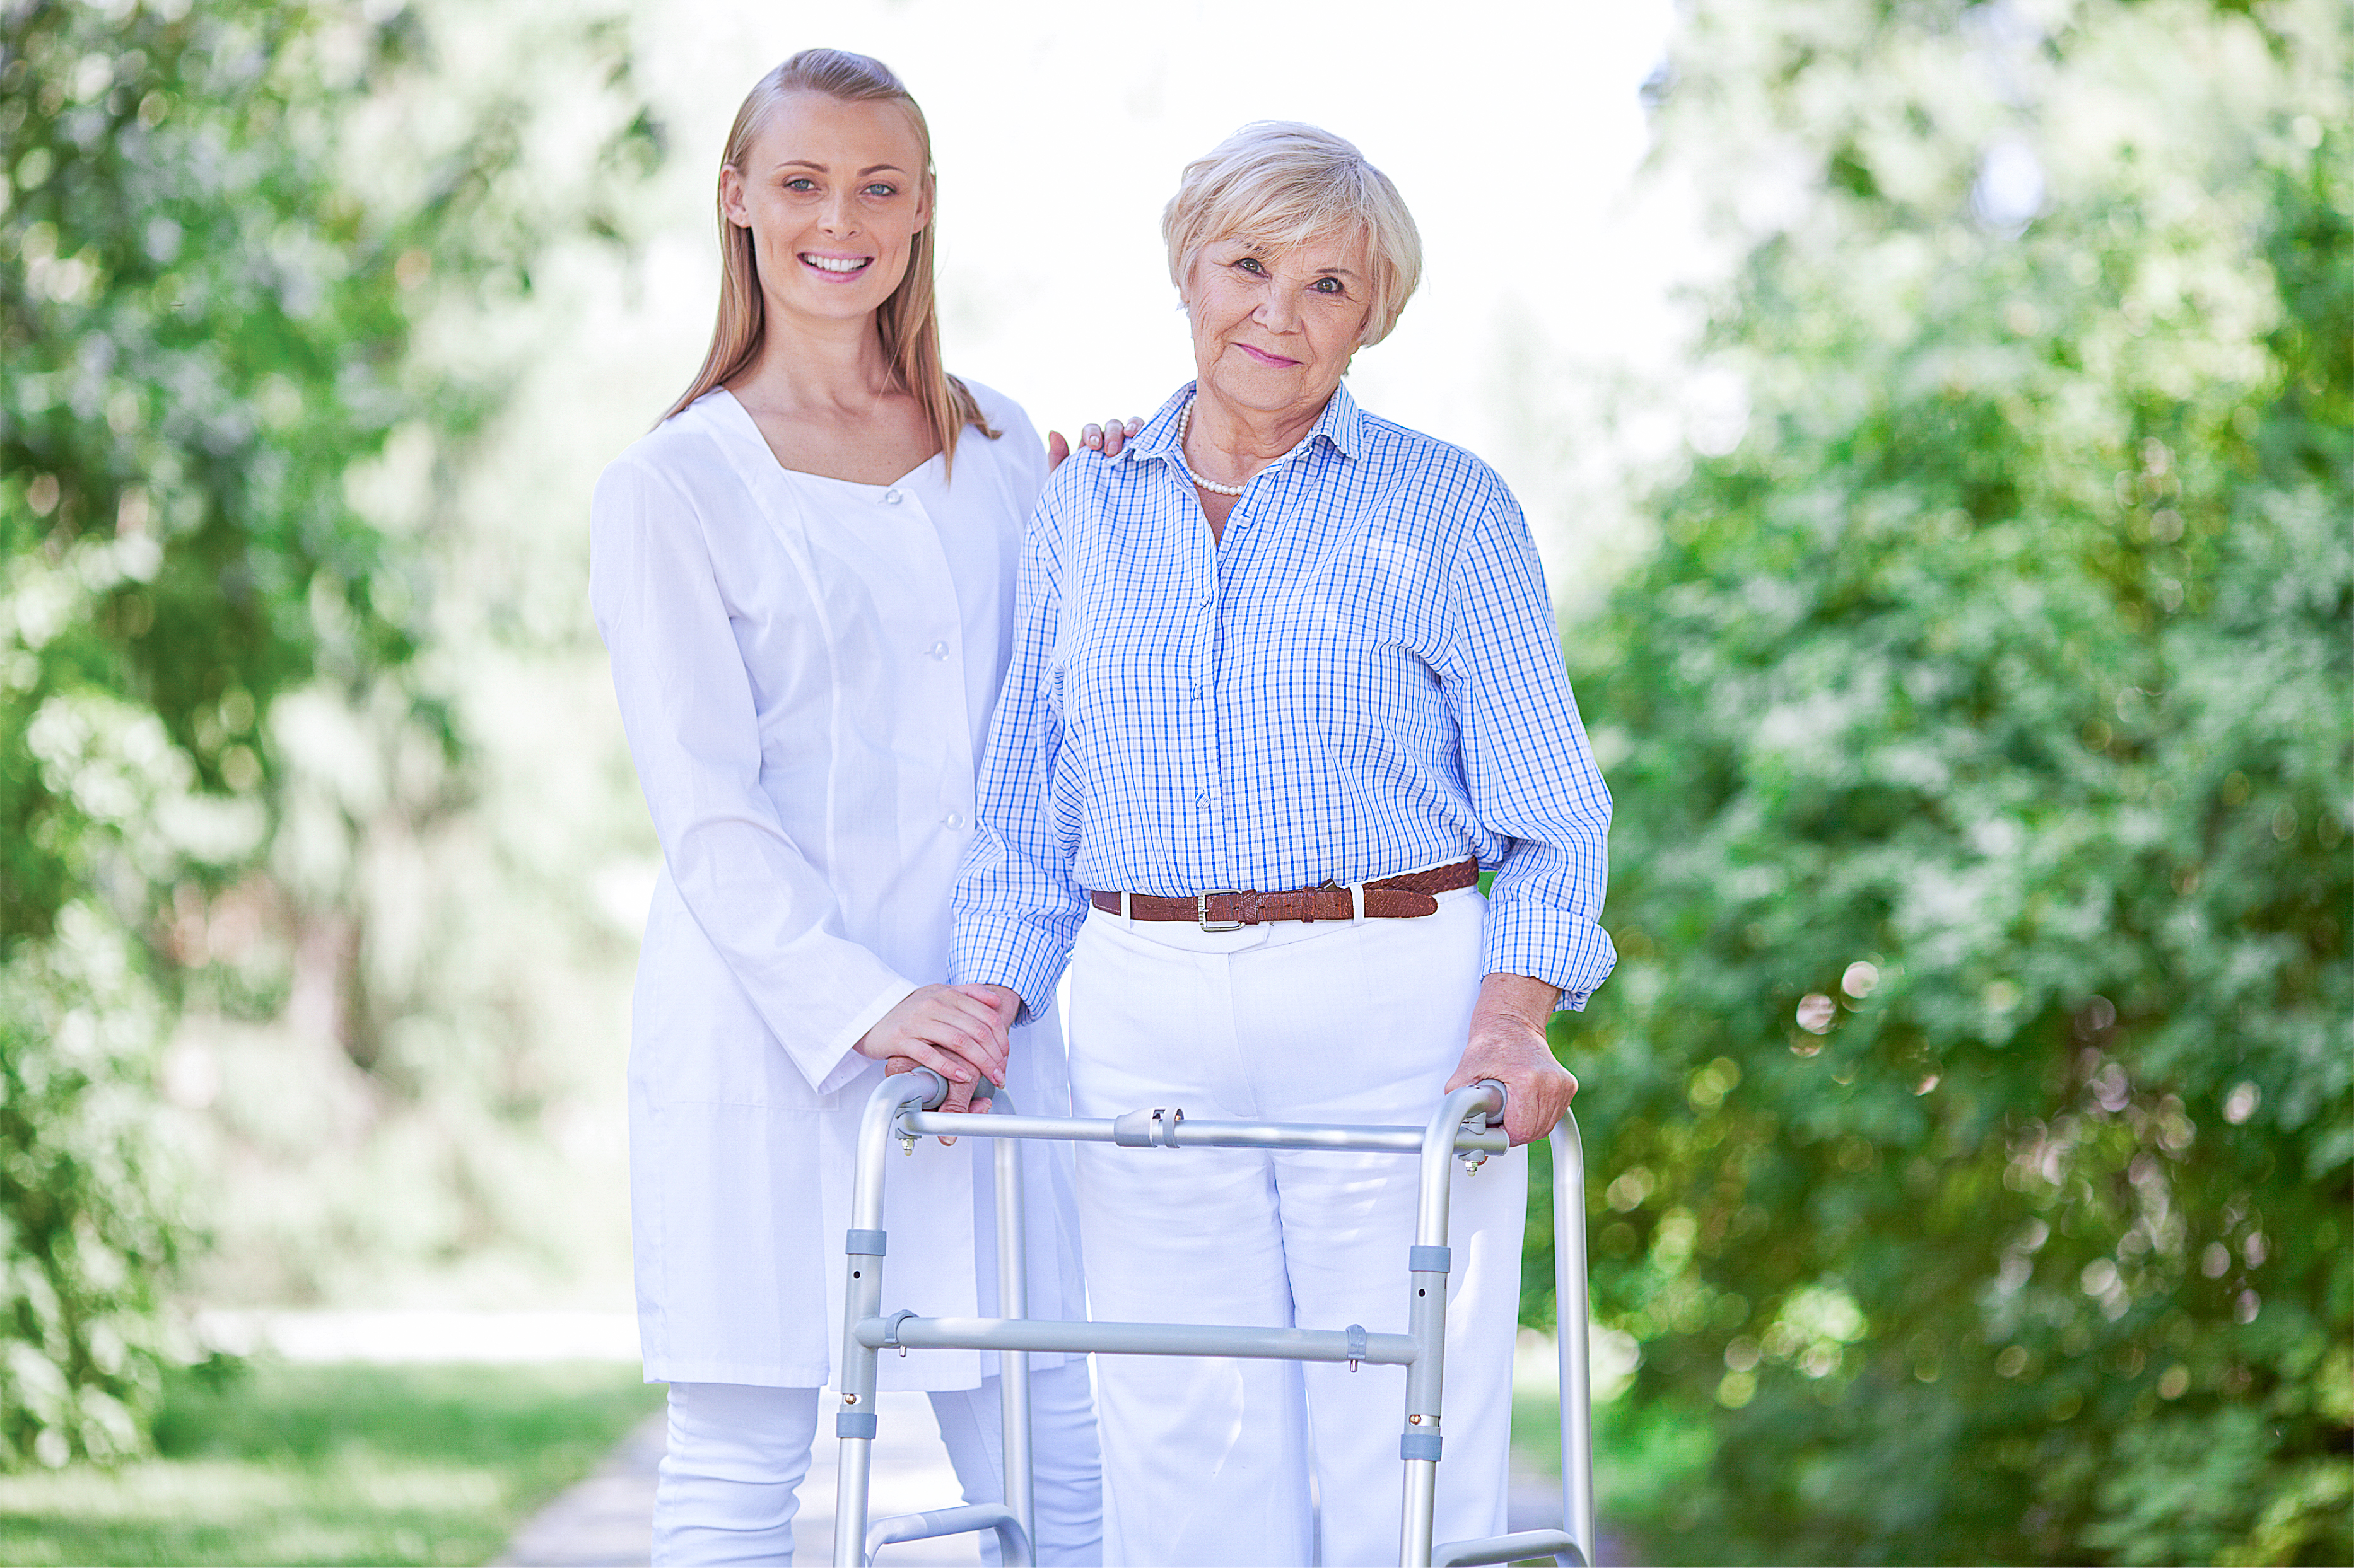 The caregiver and the patient standing